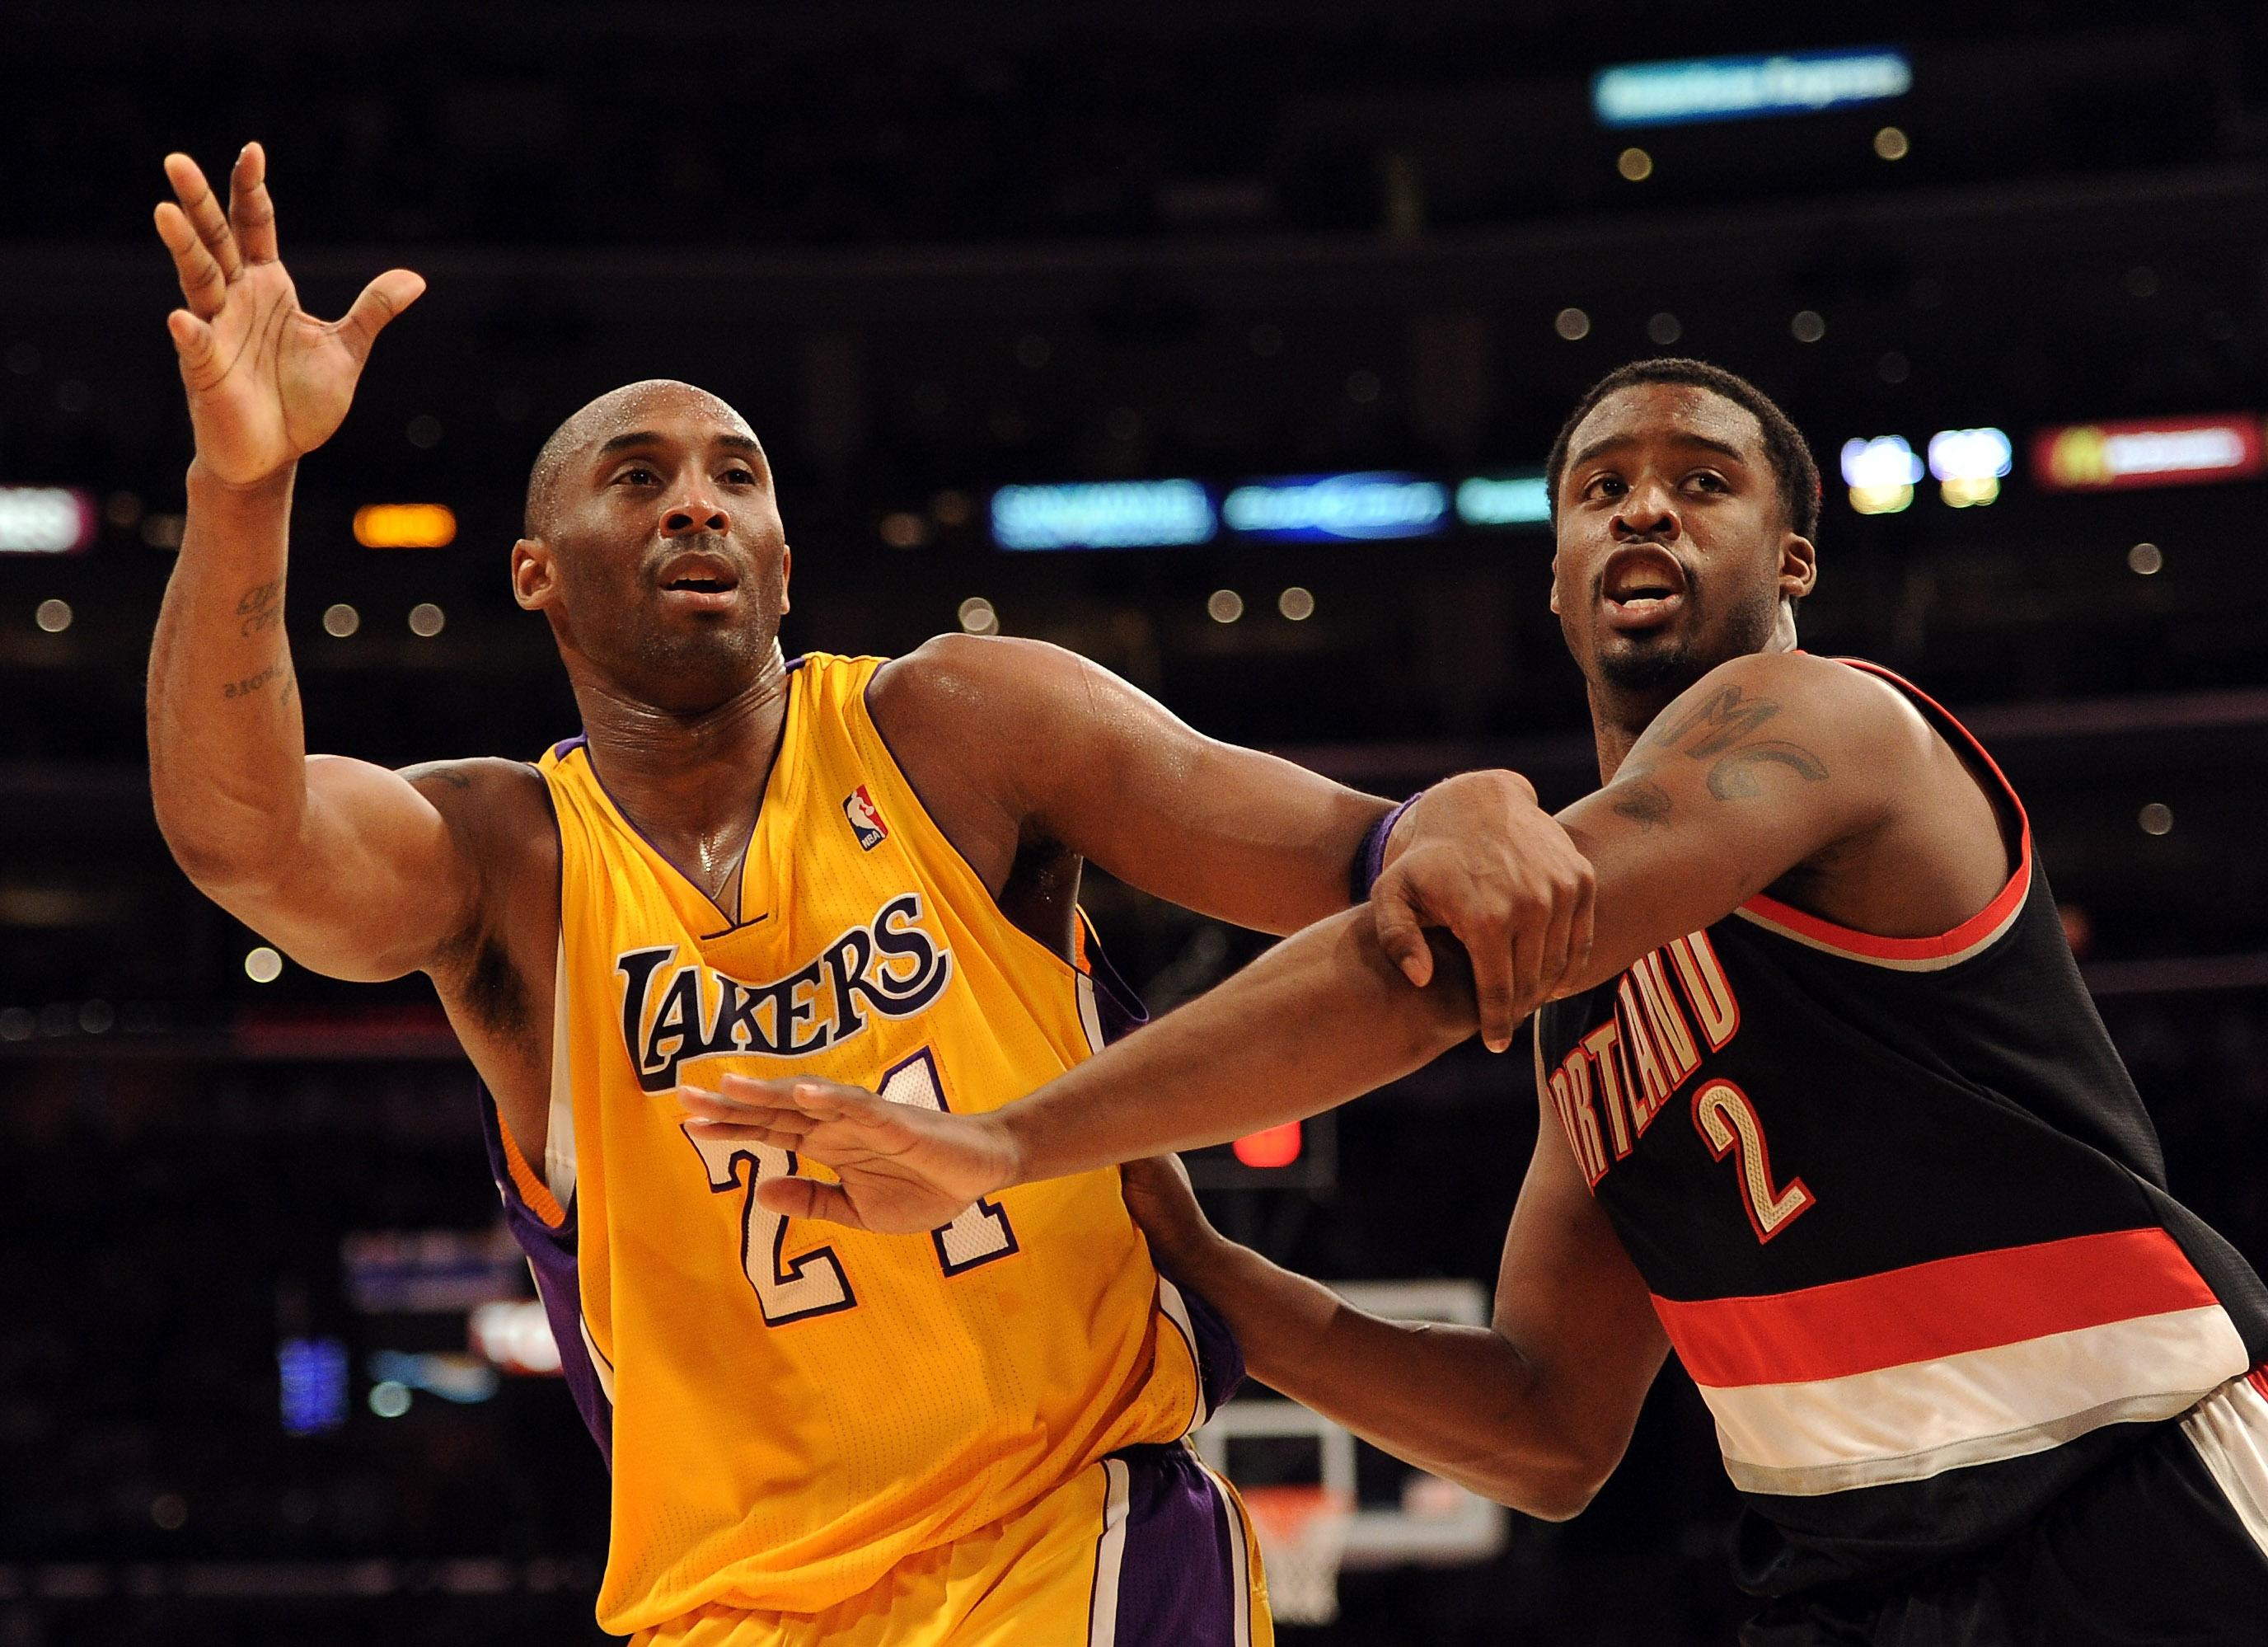 Kobe Bryant #24 of the Los Angeles Lakers calls for an inbound pass in front of Wesley Matthews #2 of the Portland Trail Blazers